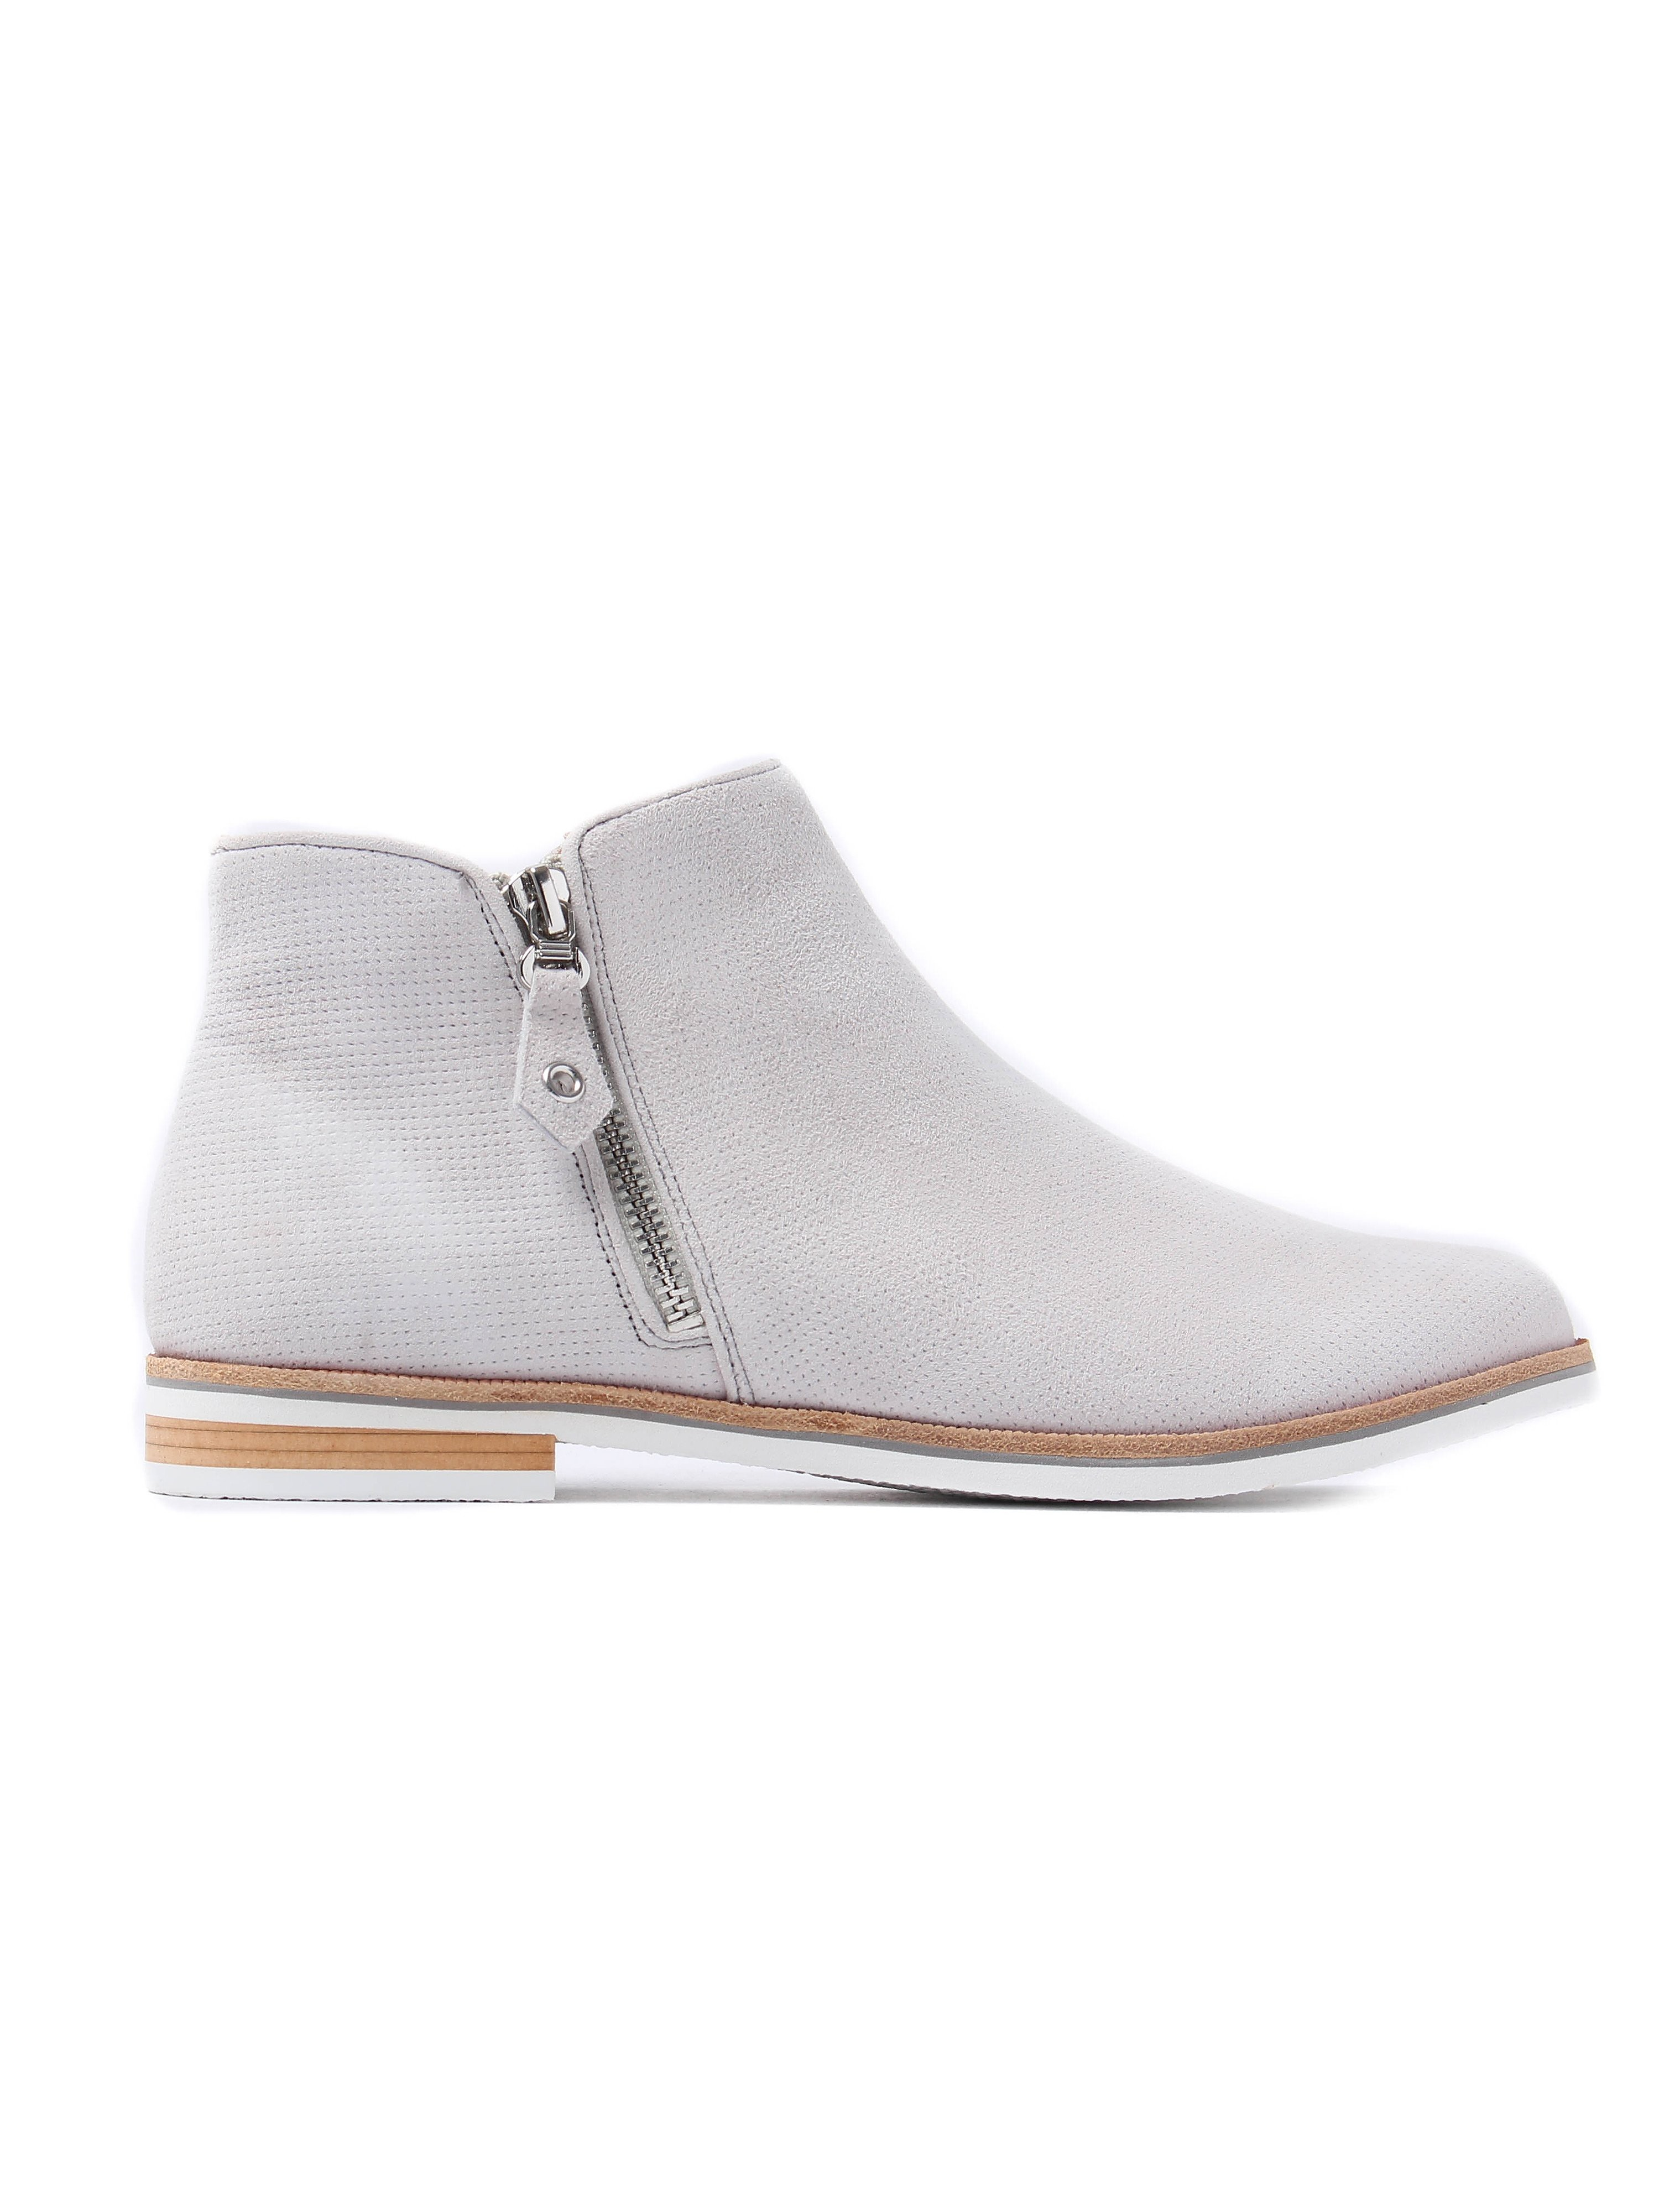 Caprice Women's Perforated Suede Size Zip Ankle Boots - Light Grey